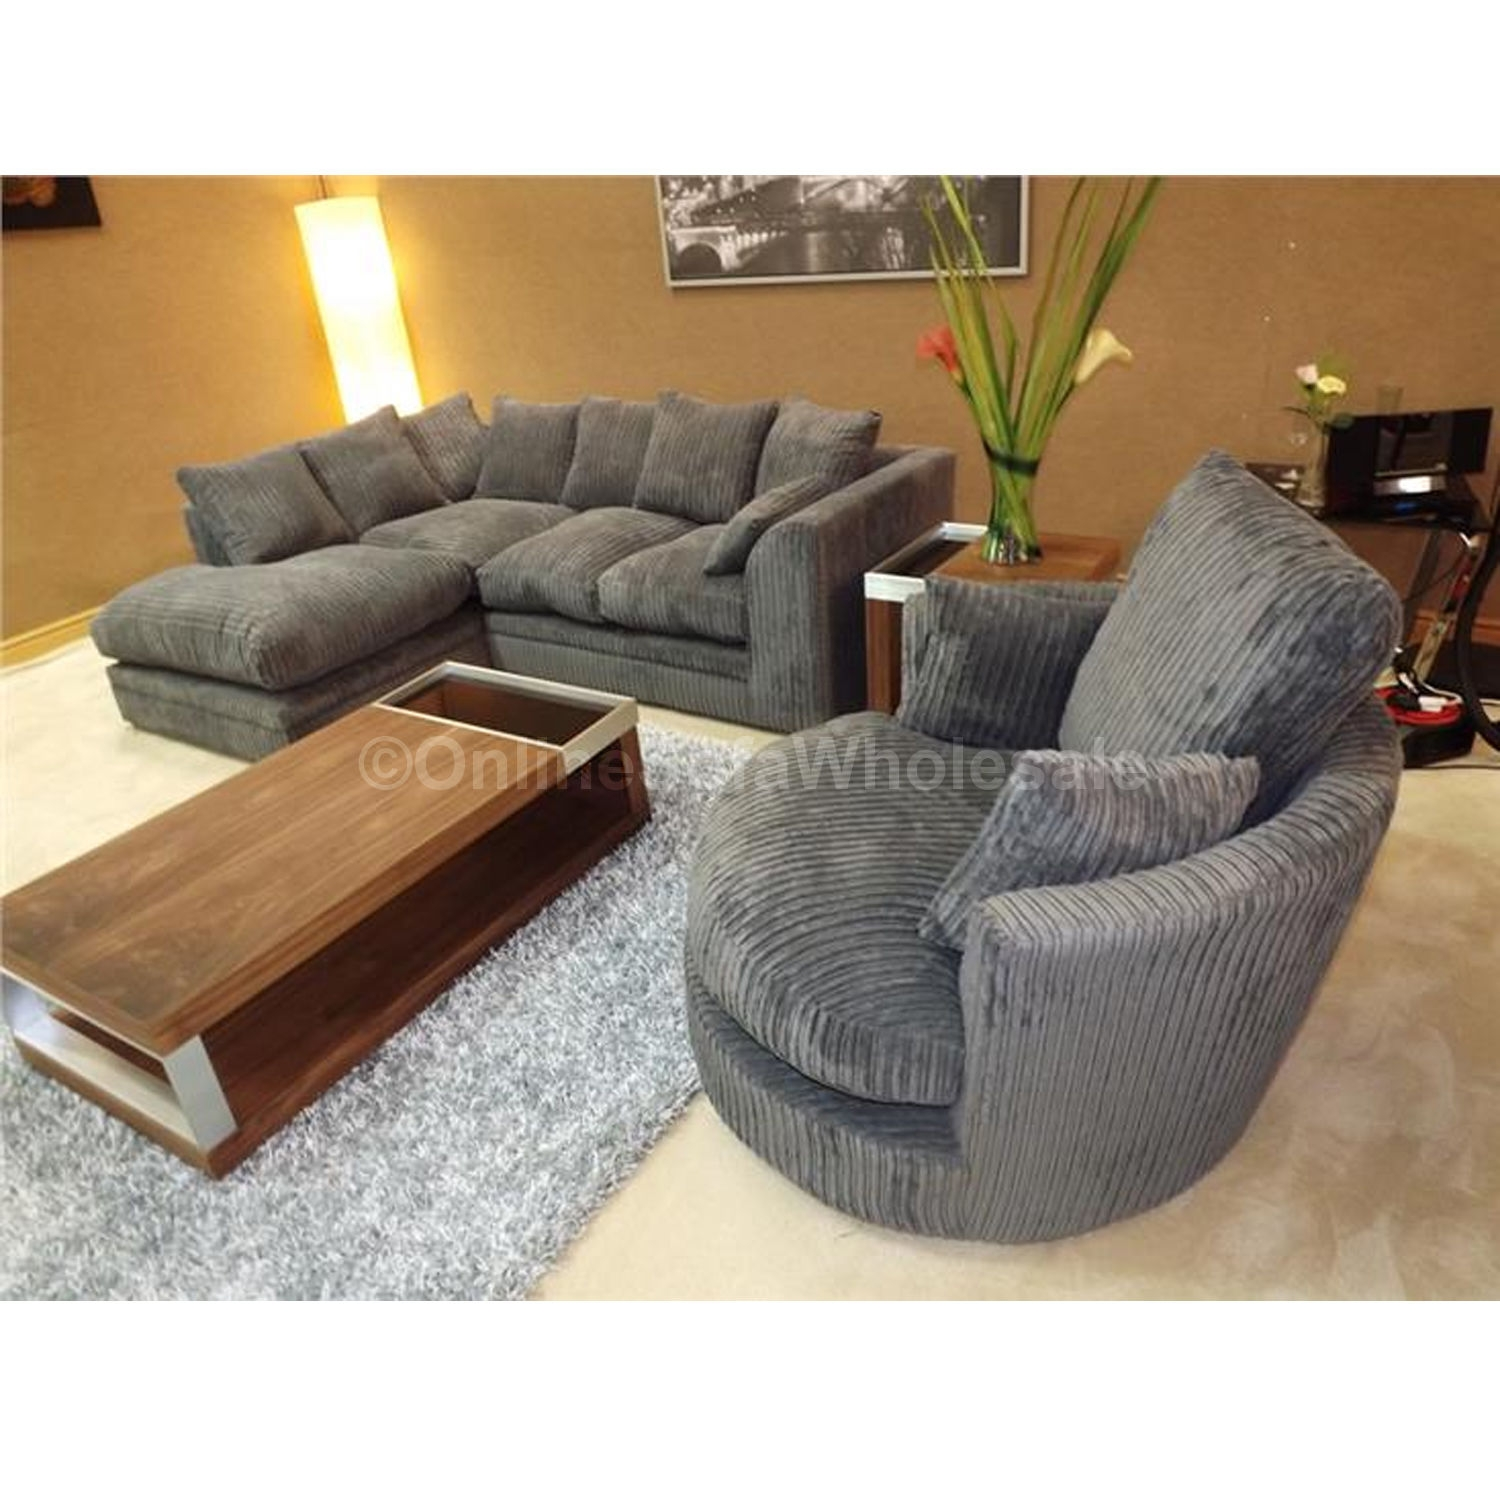 Sofa Swivel Chair Thesofa Intended For Sofa With Swivel Chair (View 6 of 15)